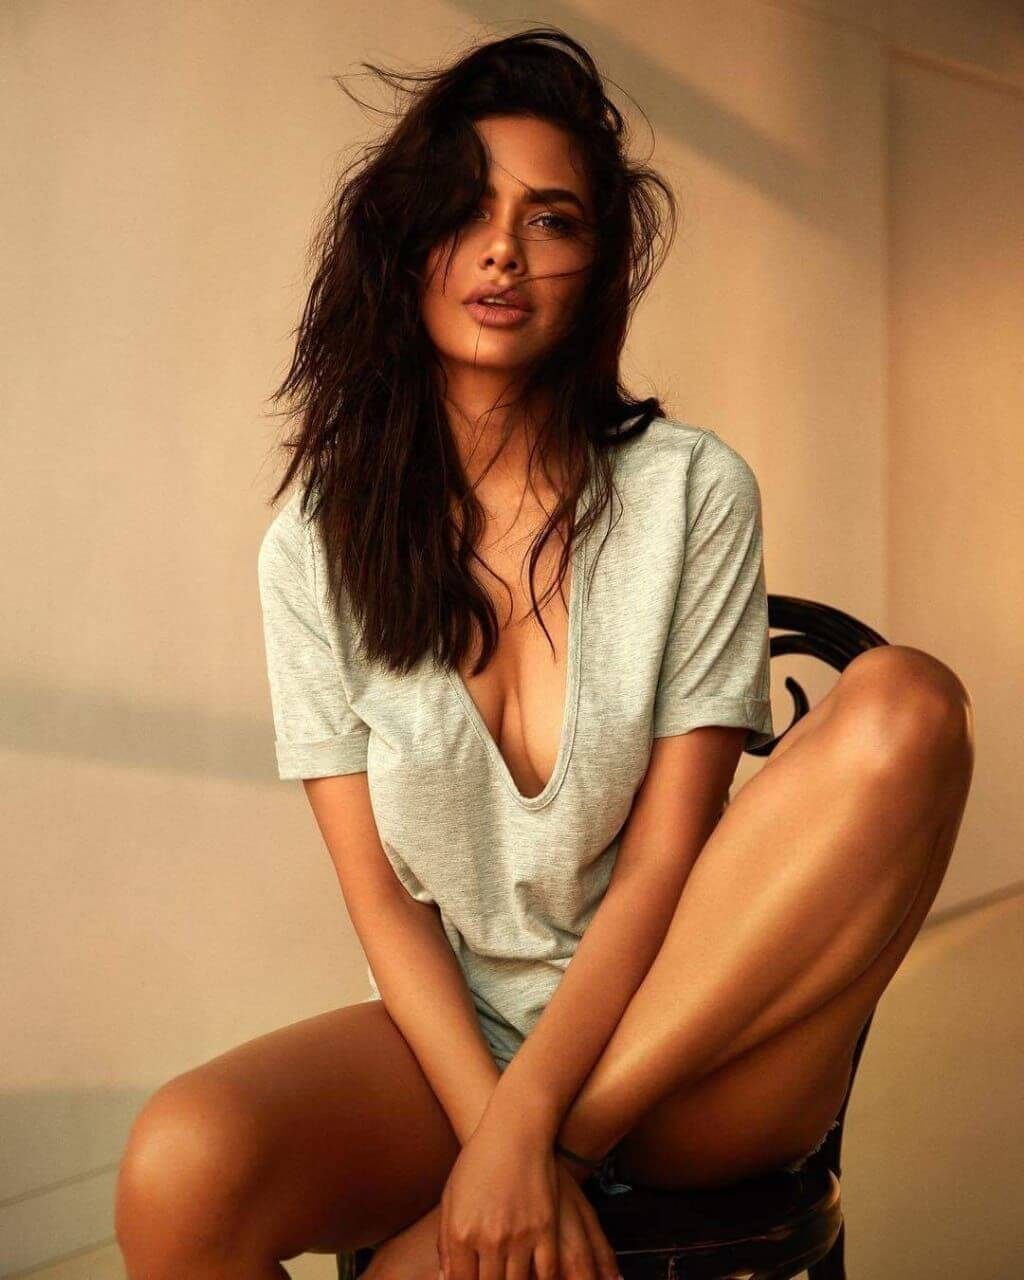 Esha Gupta Images(photos), Age, Height, Net Worth, Date Of Birth, Family, Biography, Son, Marriage, Boyfriend, Education, Awards, Hairstyle, Instagram, Twitter, Facebook, Wiki, Imdb (44)